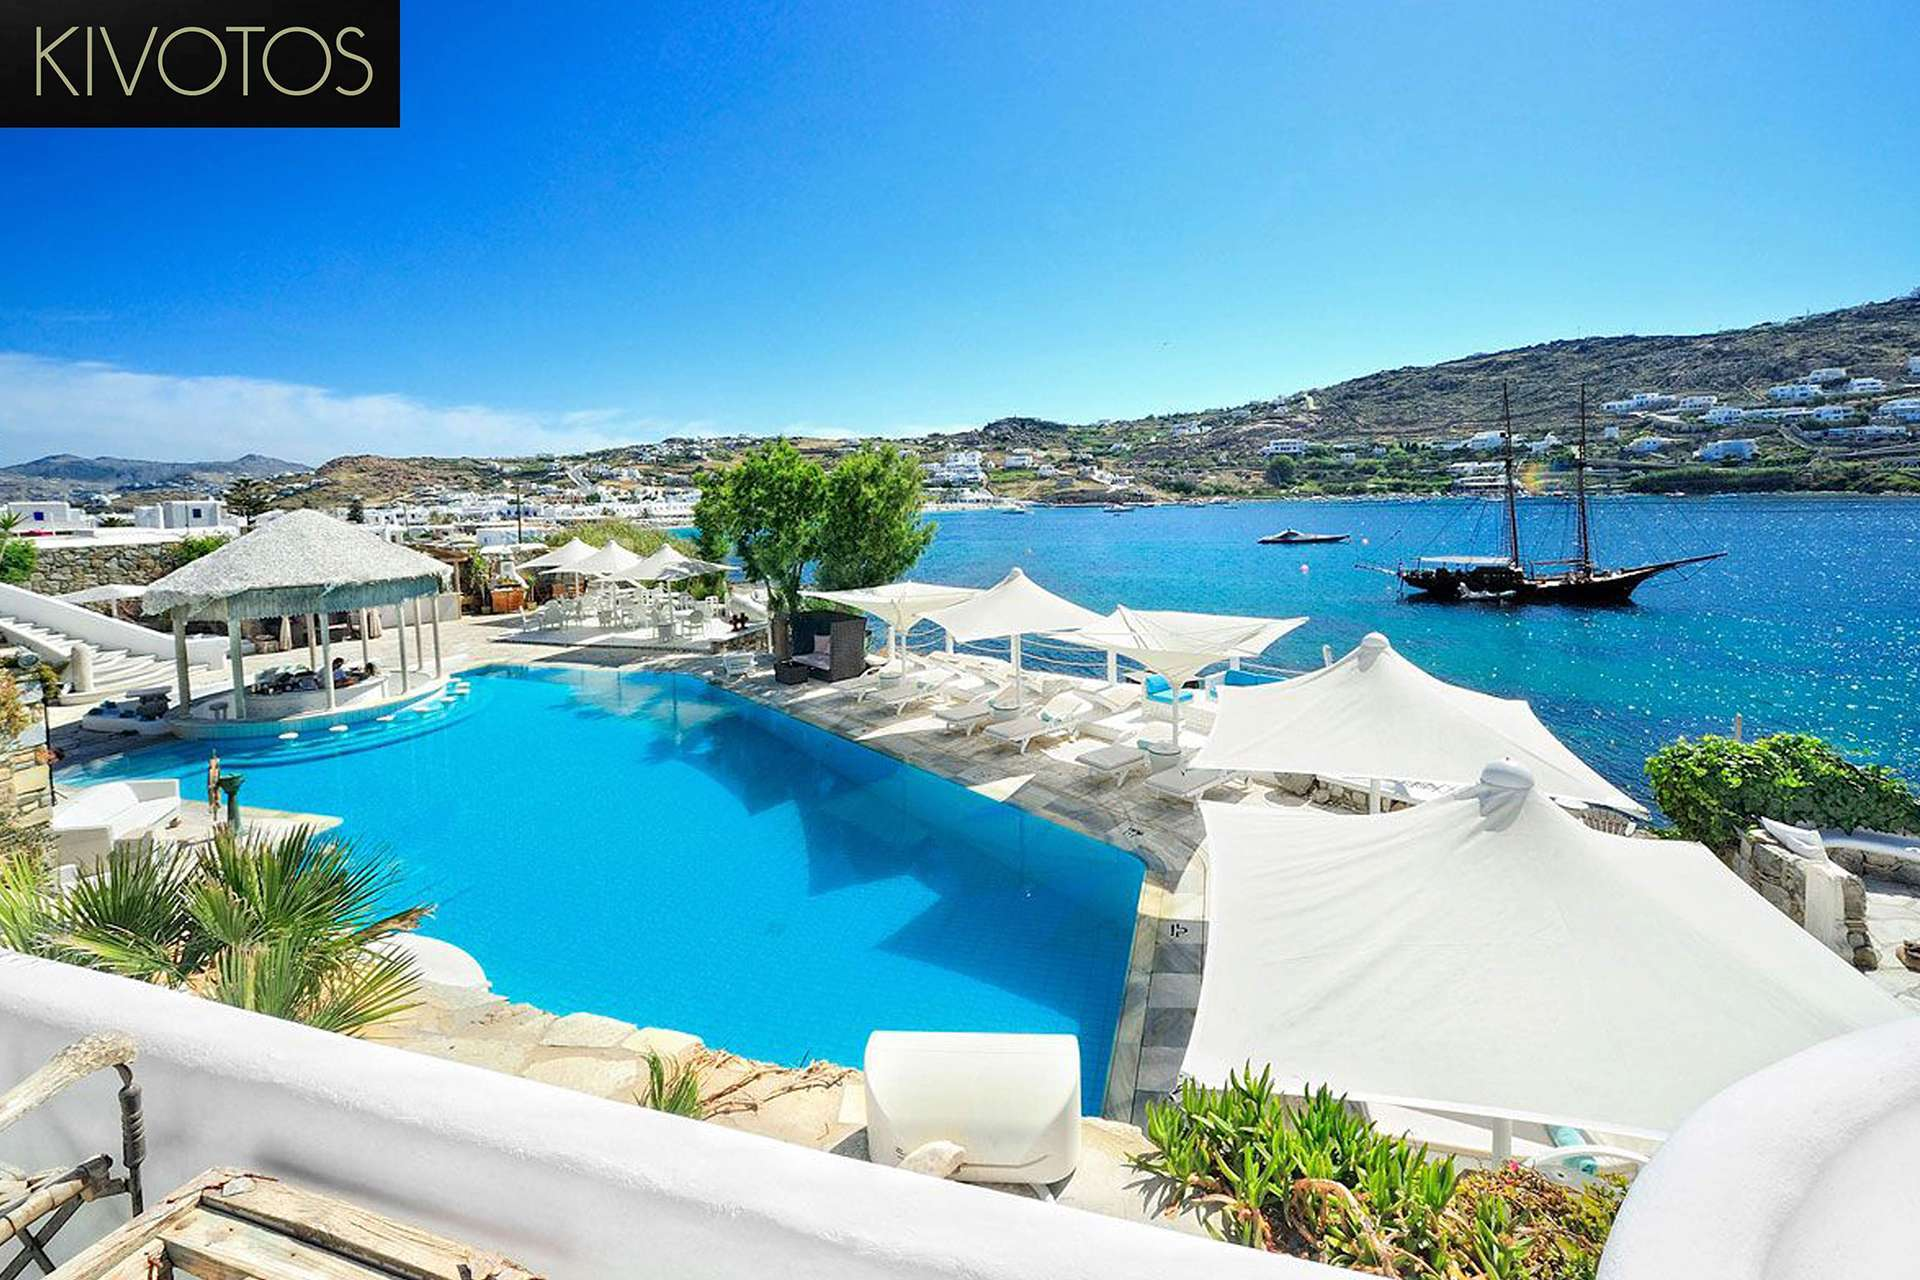 Kivotos Mykonos Resort